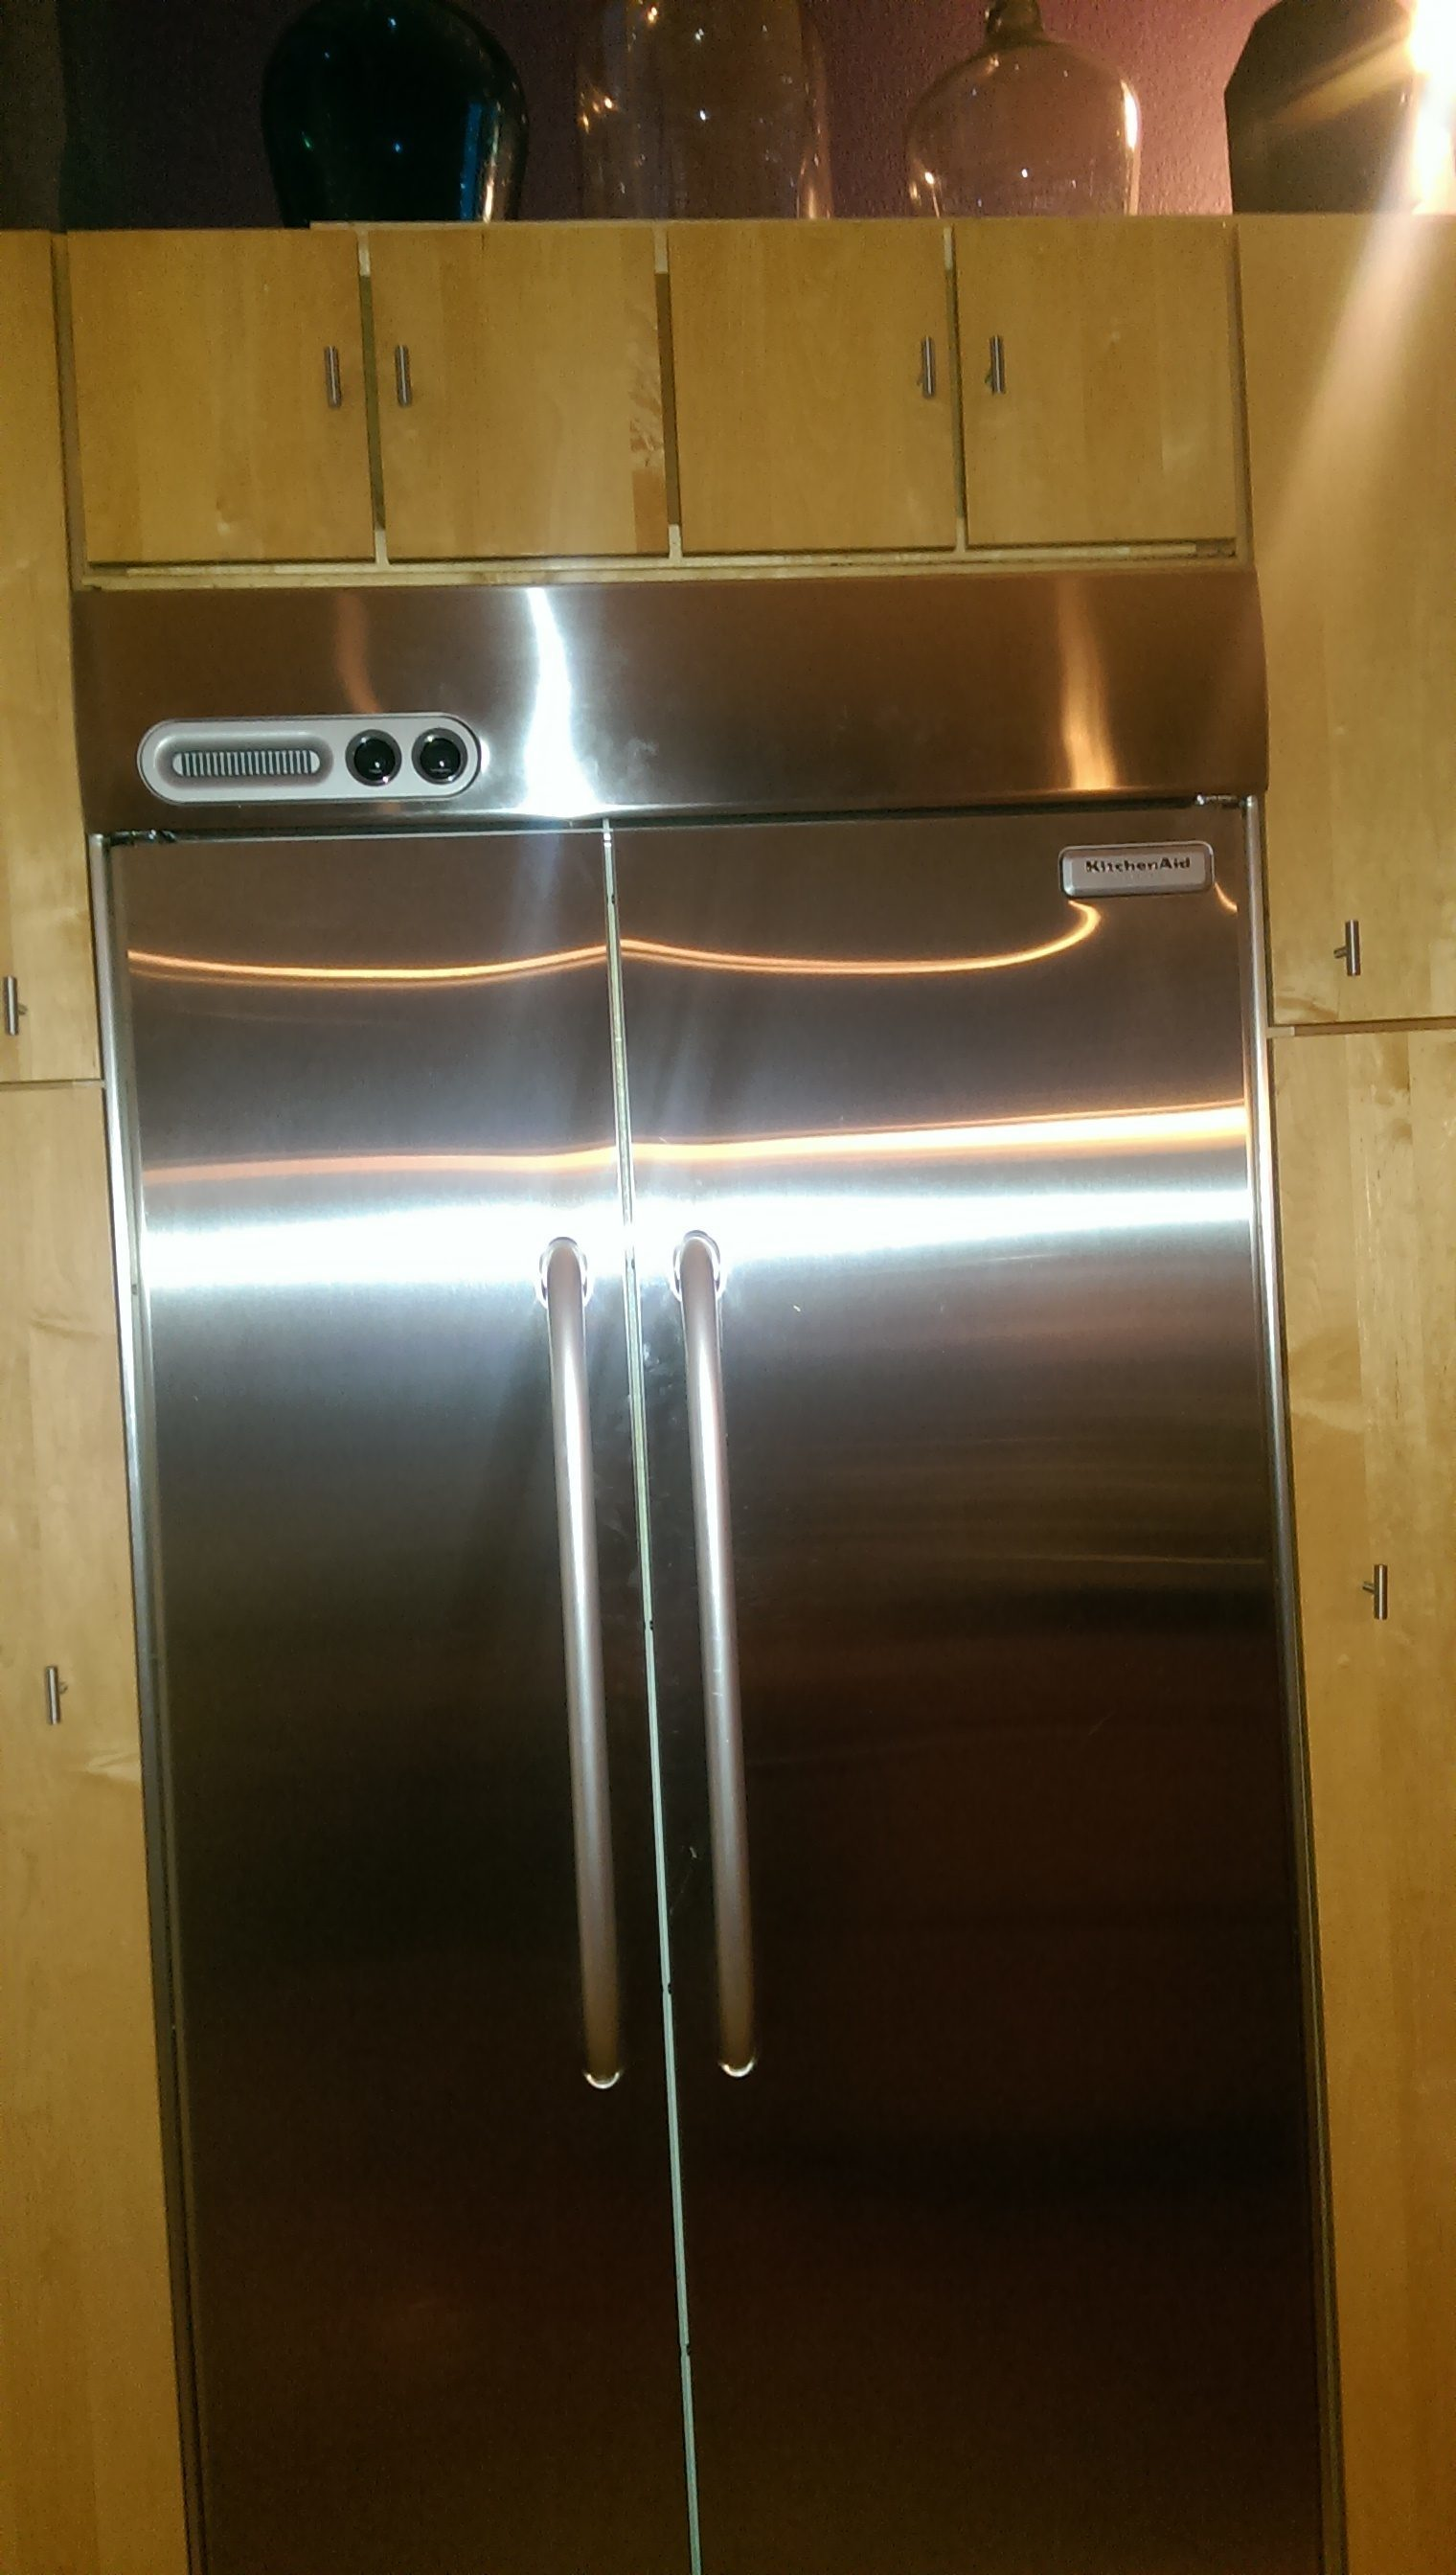 Top 784 Complaints and Reviews about KitchenAid Refrigerators | Page 9